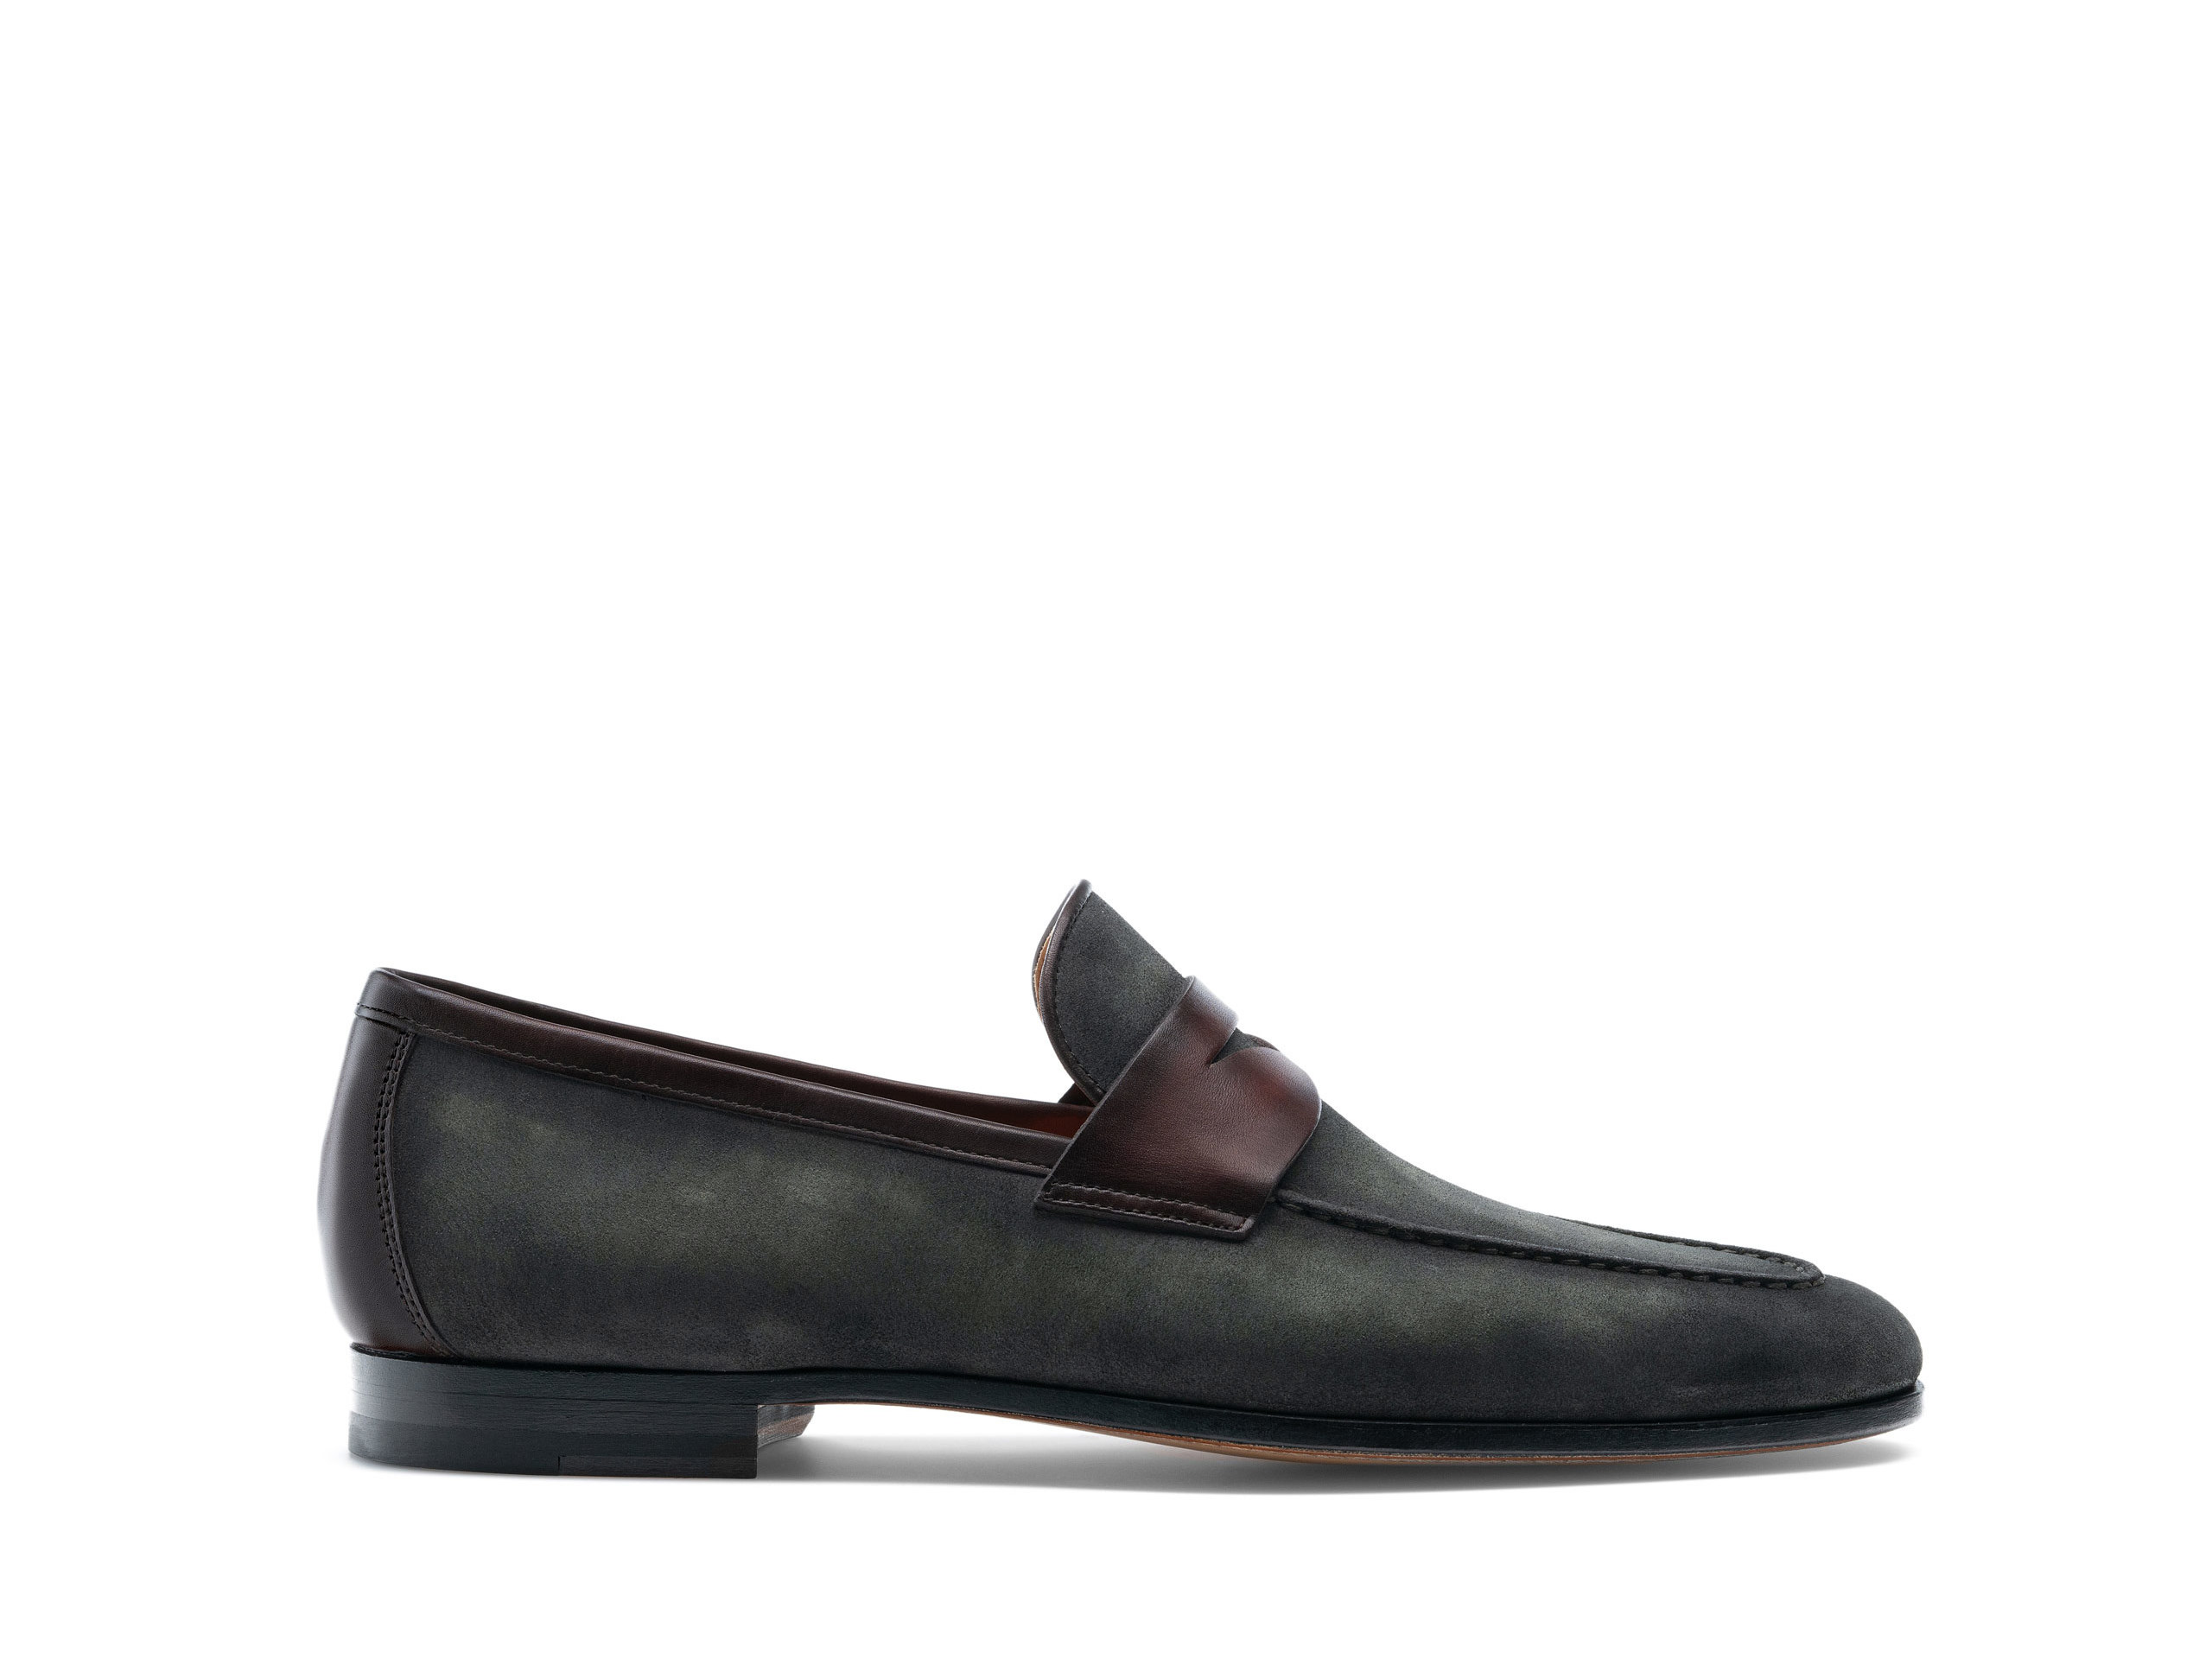 Side Profile of Diezma III Musgo Suede Loafers